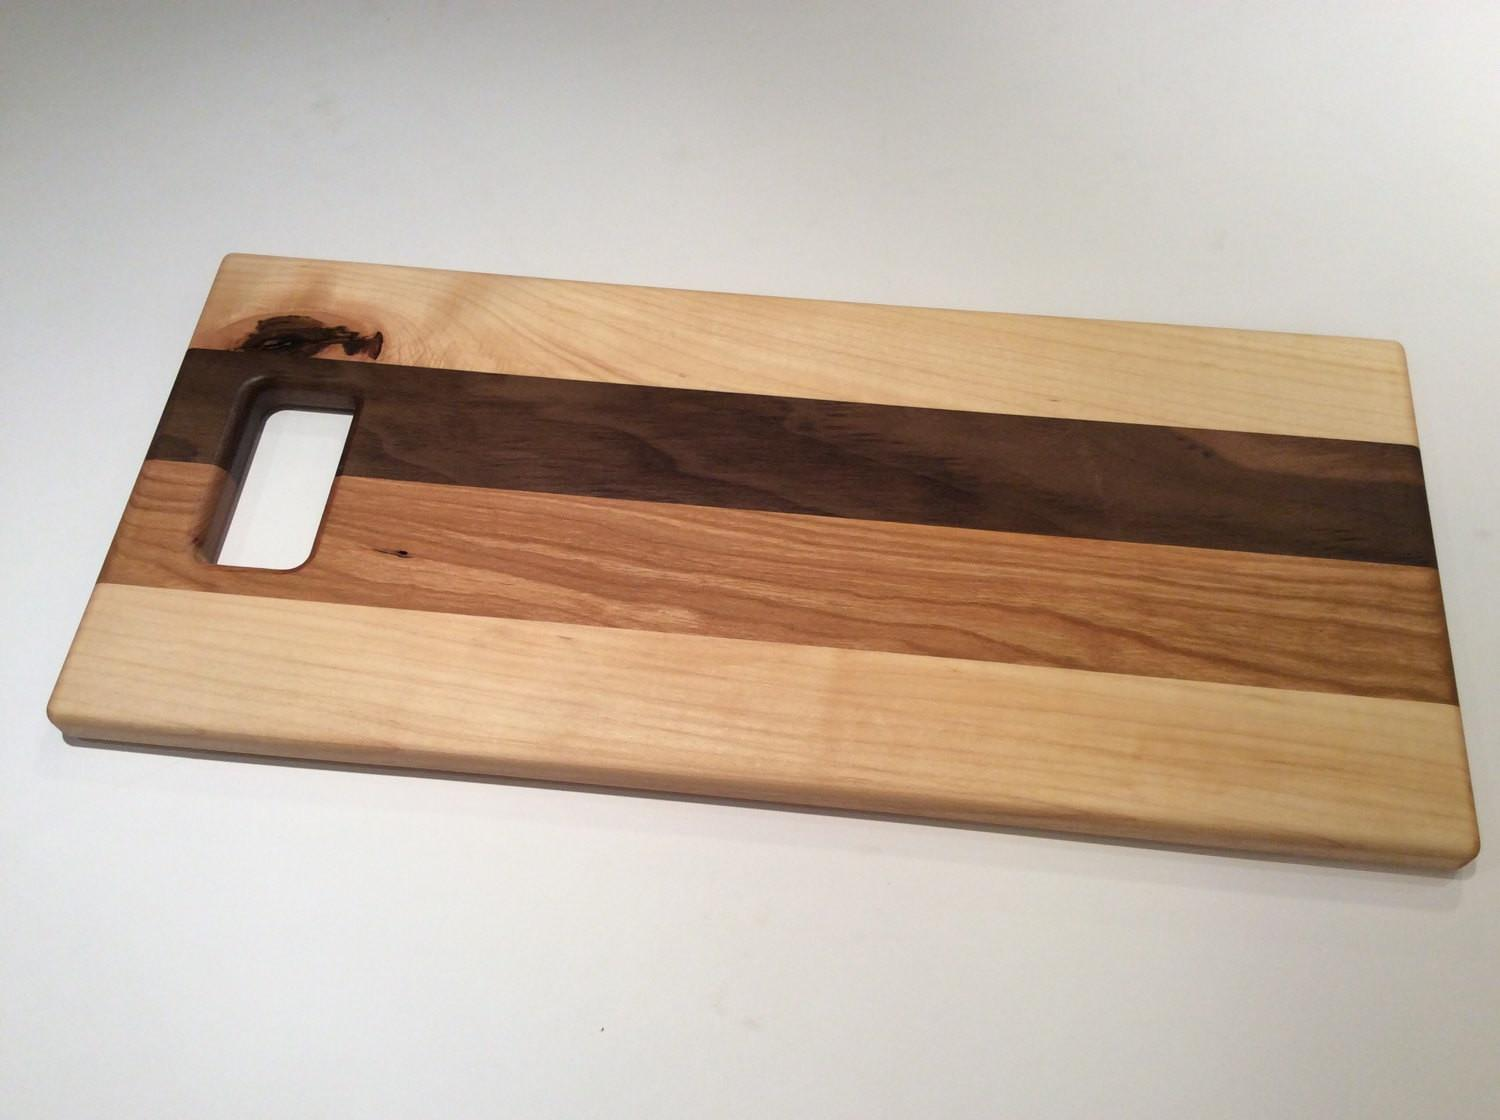 Wooden Serving Board Charcuterie Cheese